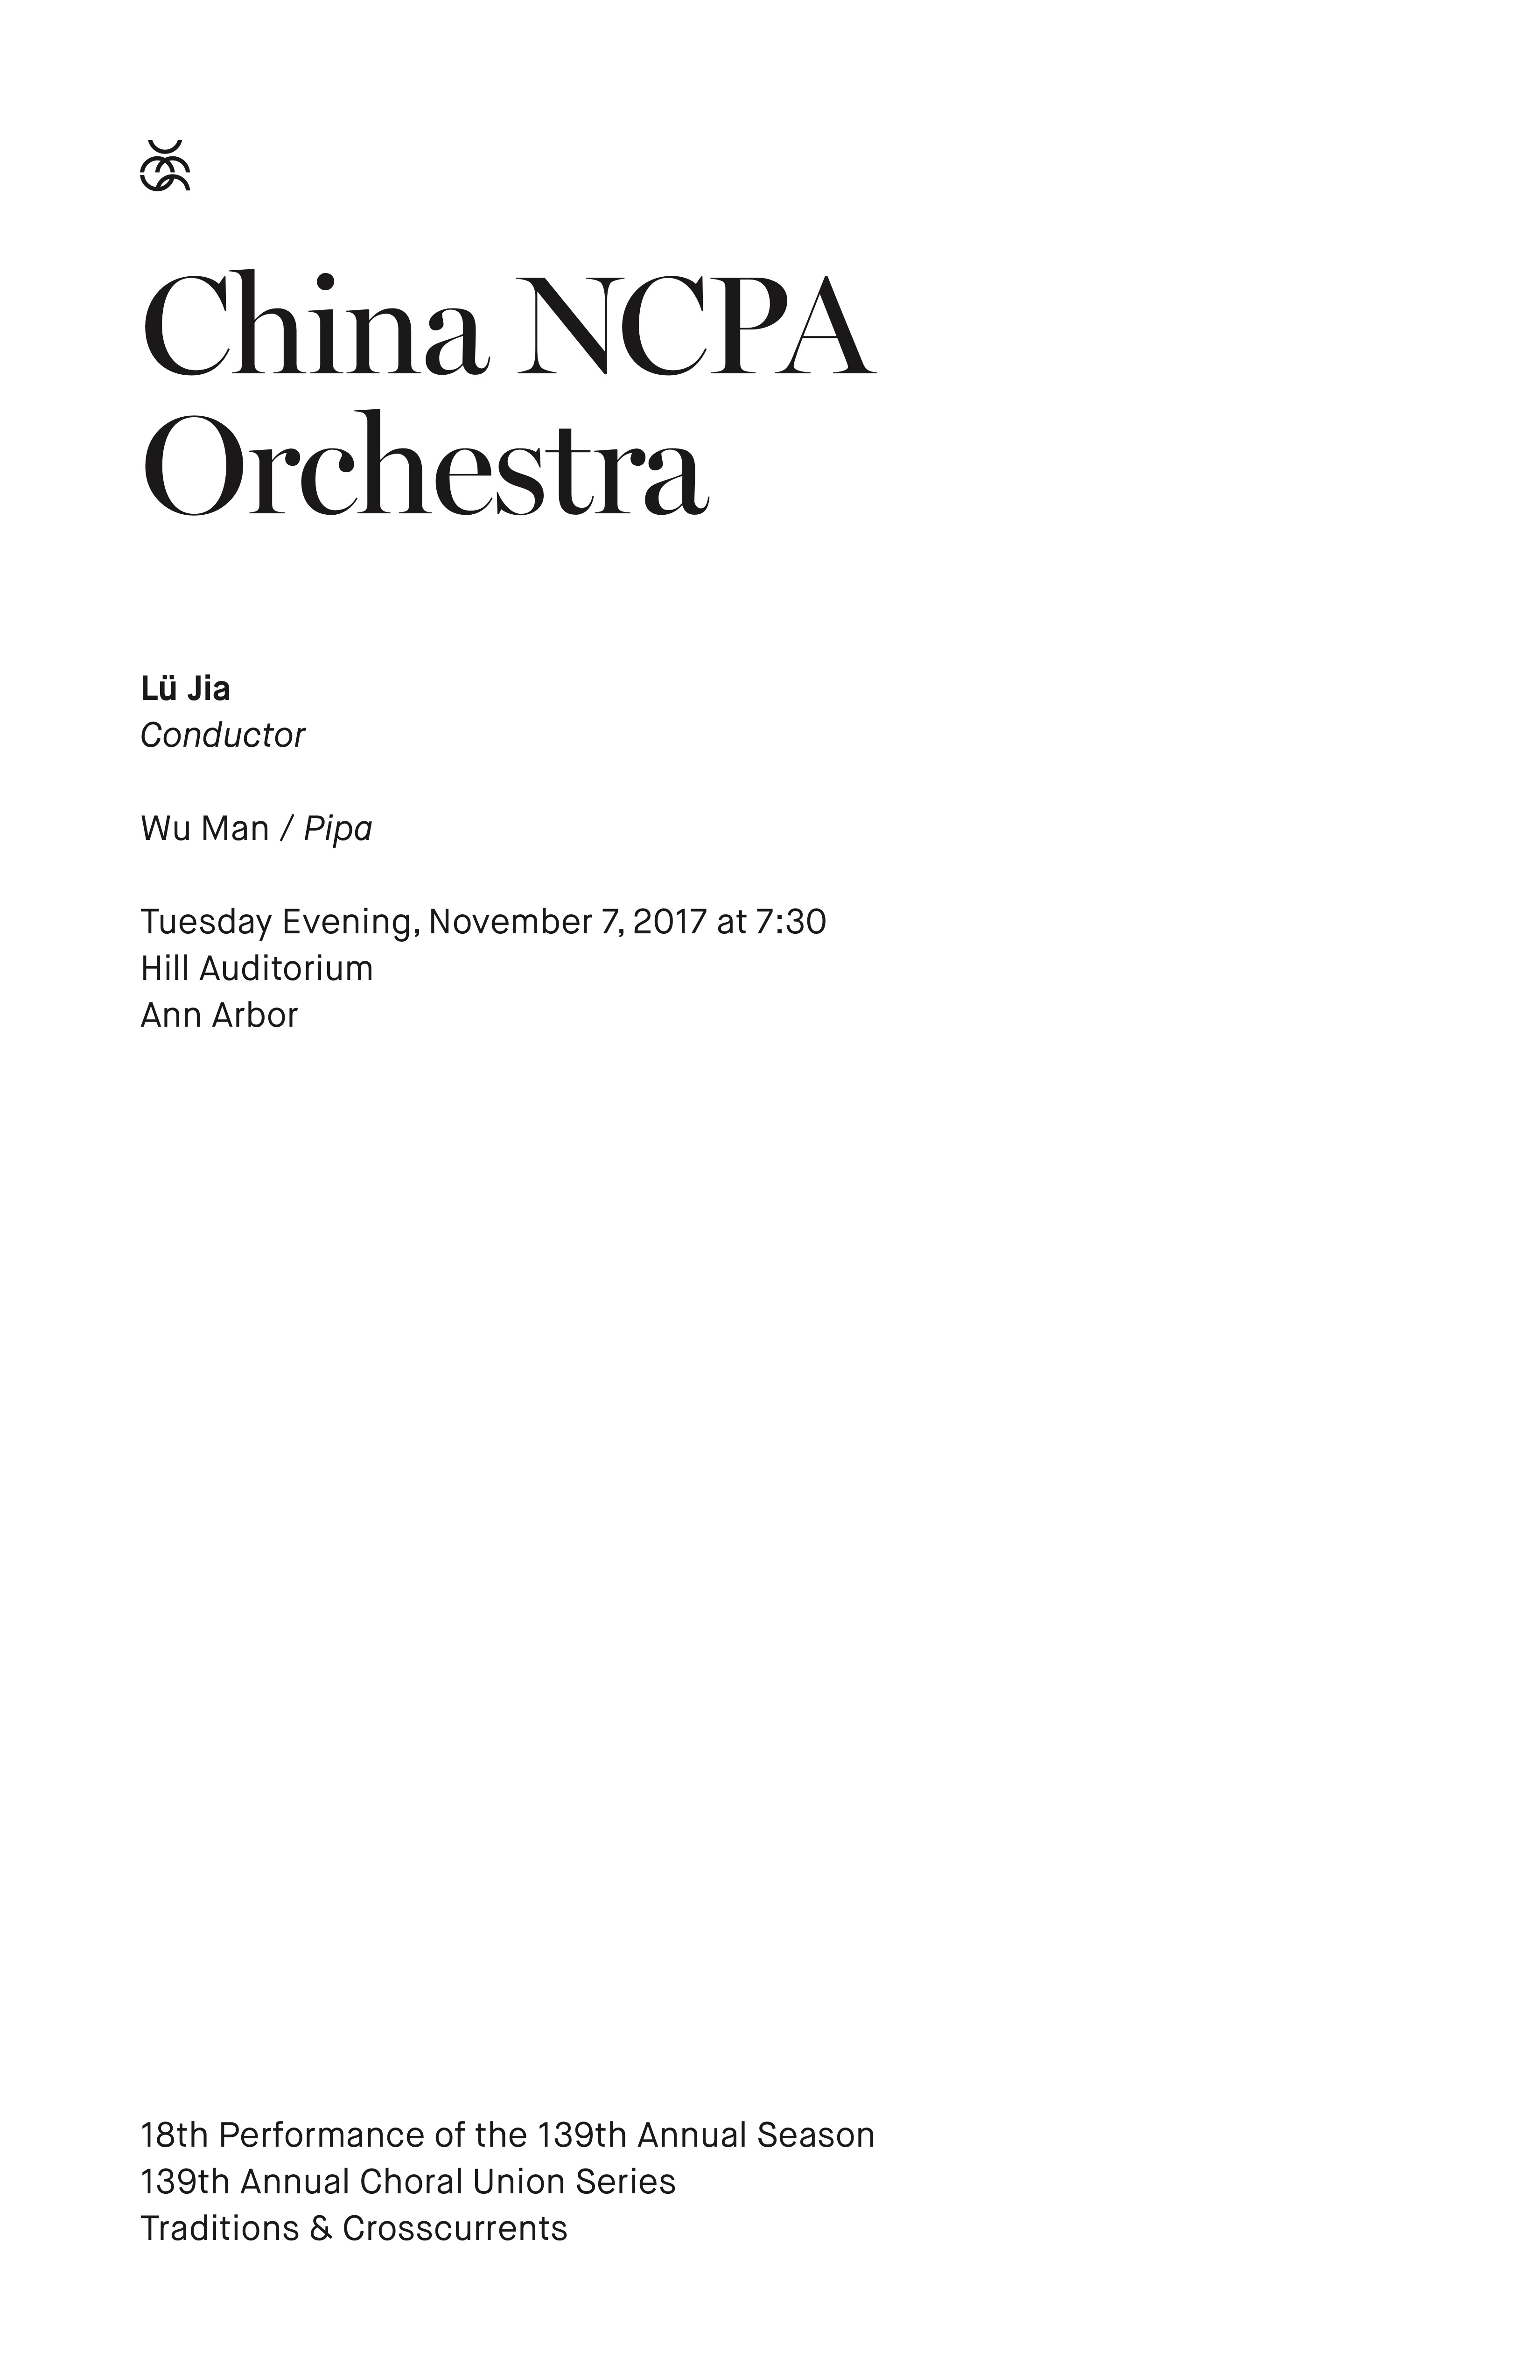 UMS Concert Program, November 7, 2017 - China NCPA Orchestra image